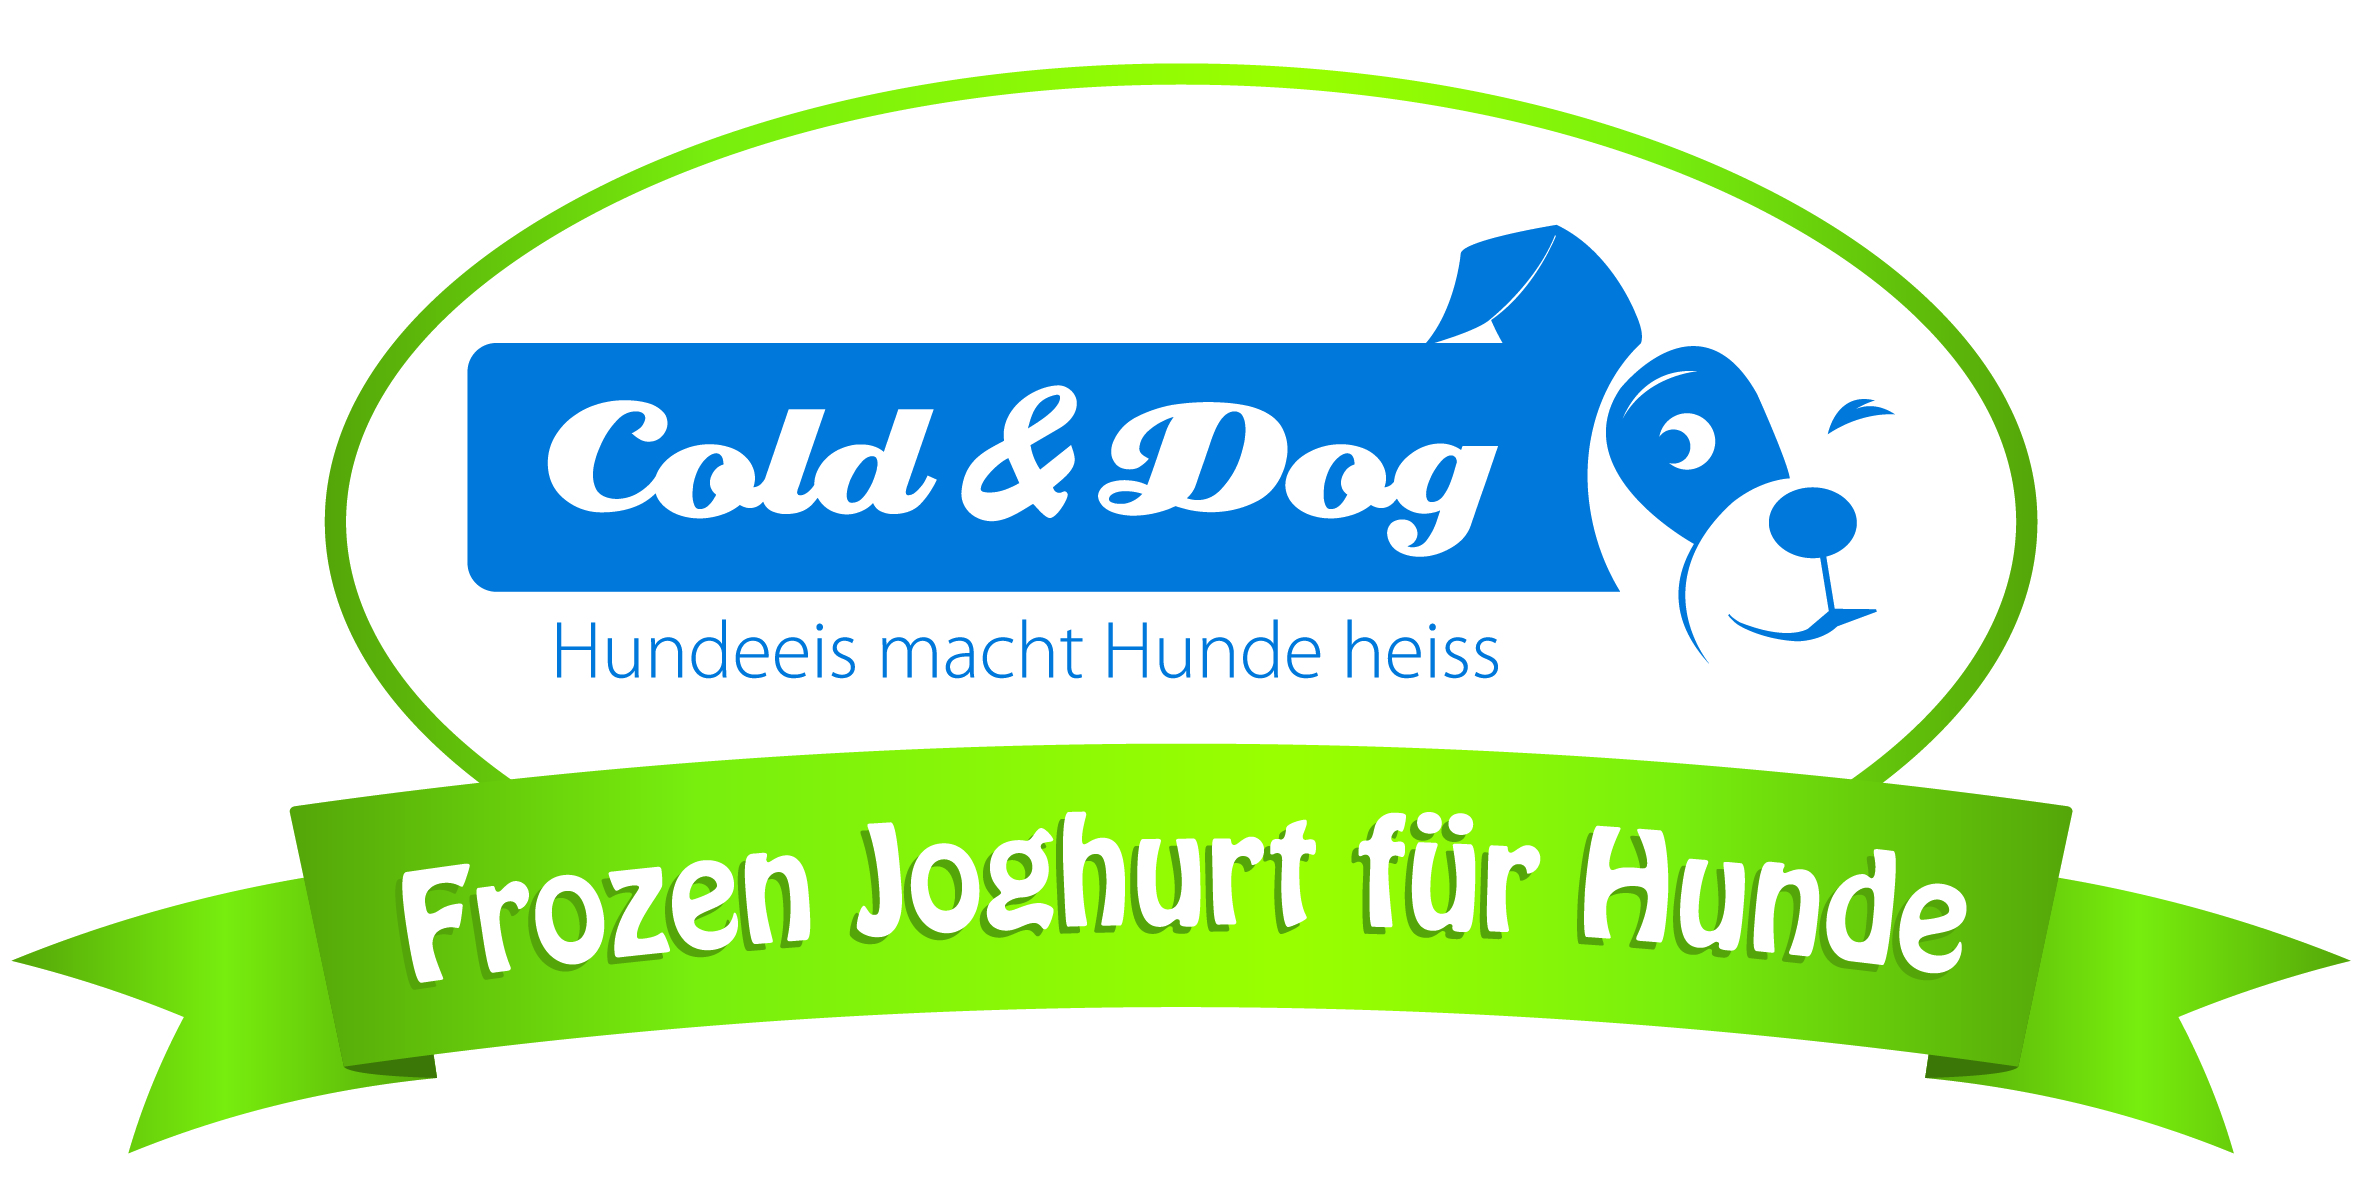 cold_and_dog_logo_cmyk_300dpi